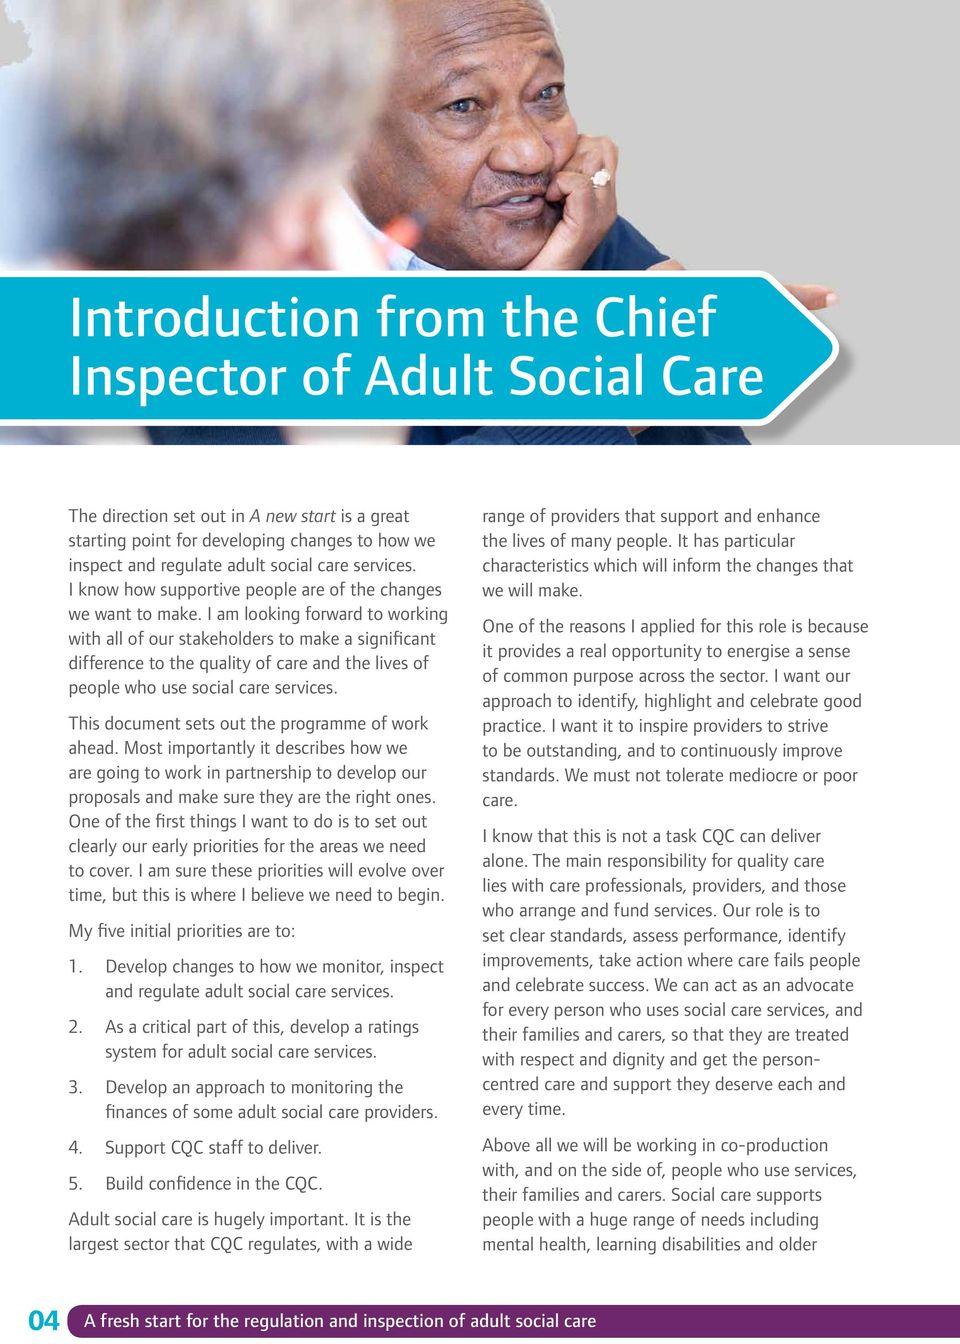 I am looking forward to working with all of our stakeholders to make a significant difference to the quality of care and the lives of people who use social care services.